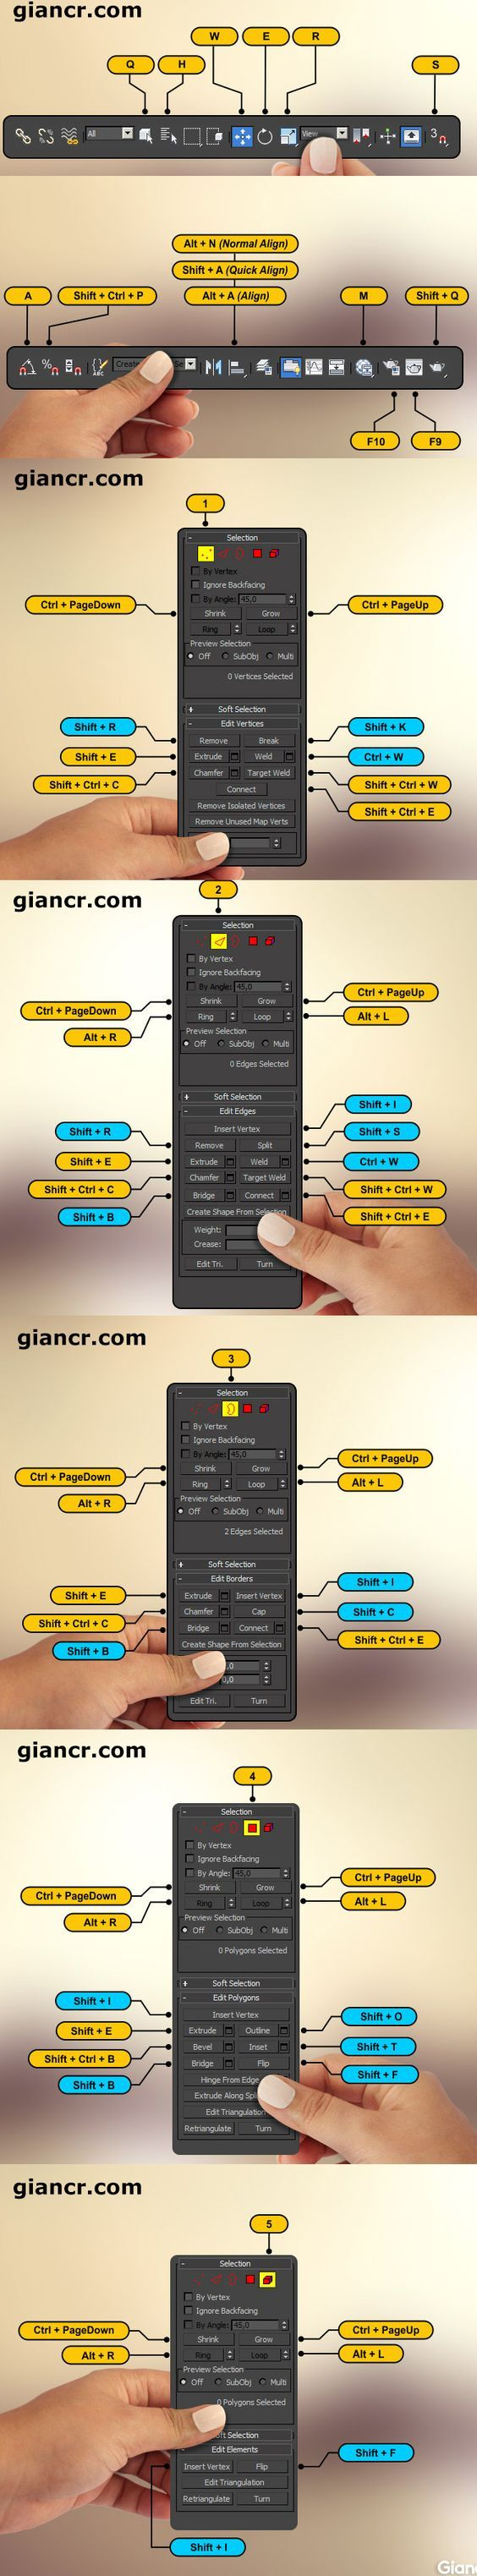 http://giancr.com  shortcuts, tutorials, resources at > http://giancr.com: